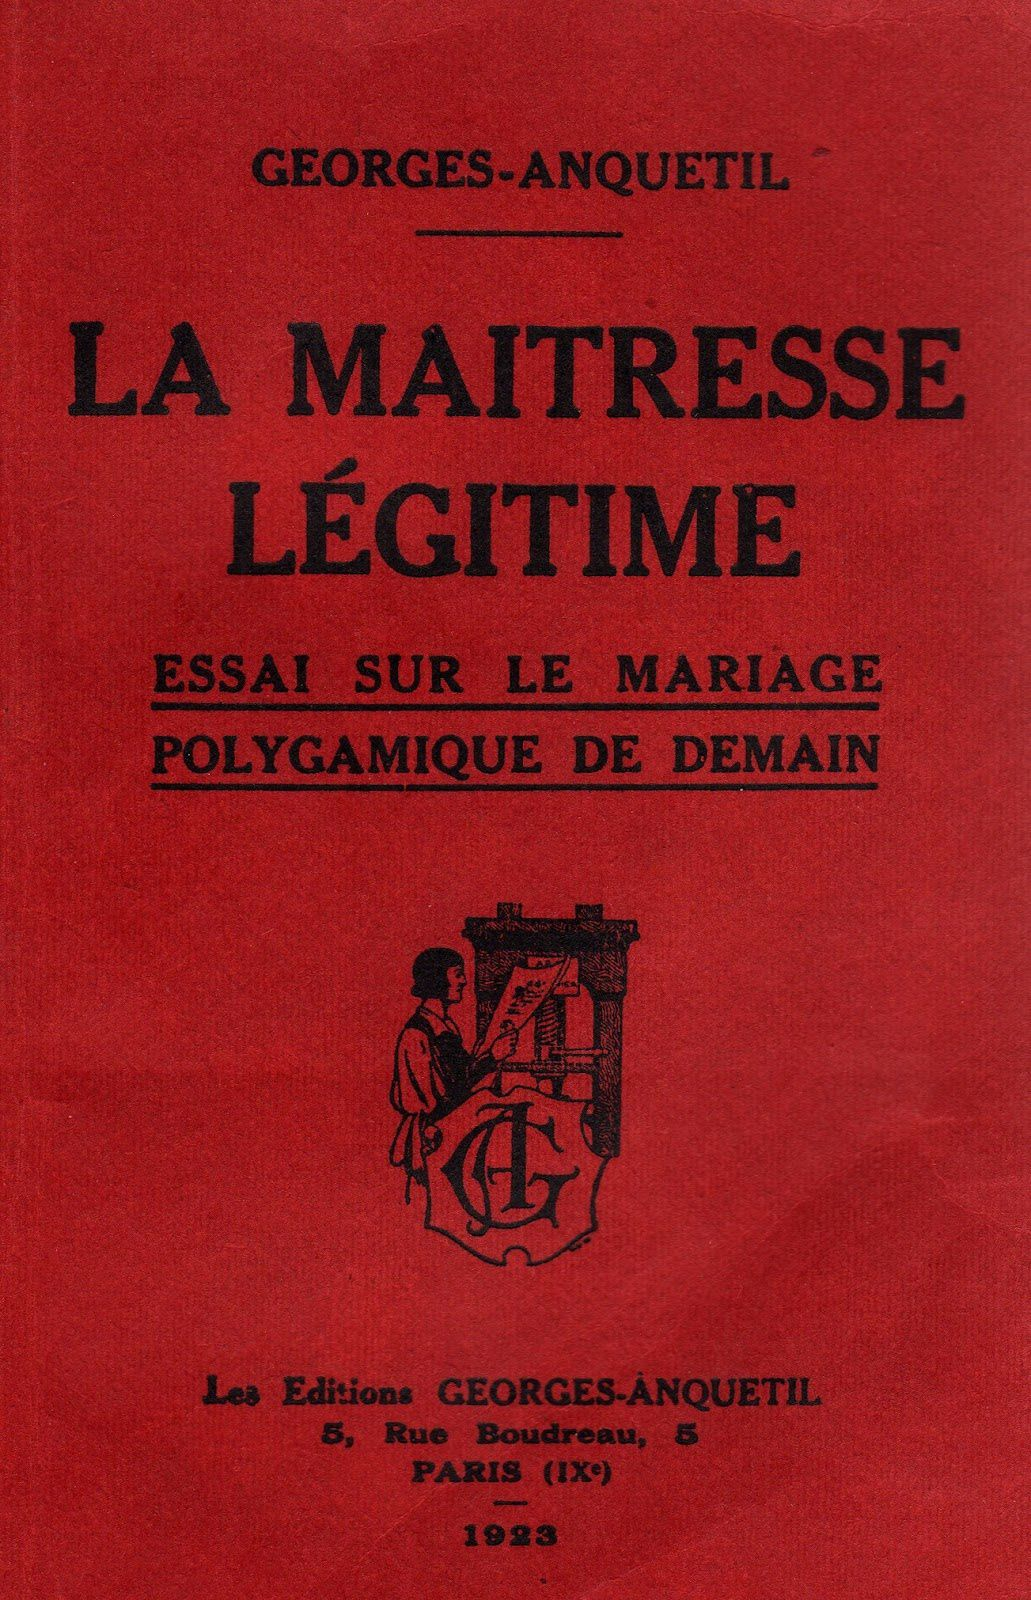 "Georges-Anquetil ""La Maitresse Self - Test on polygamous marriage tomorrow"" (Editions Georges-Anquetil - 1922)"